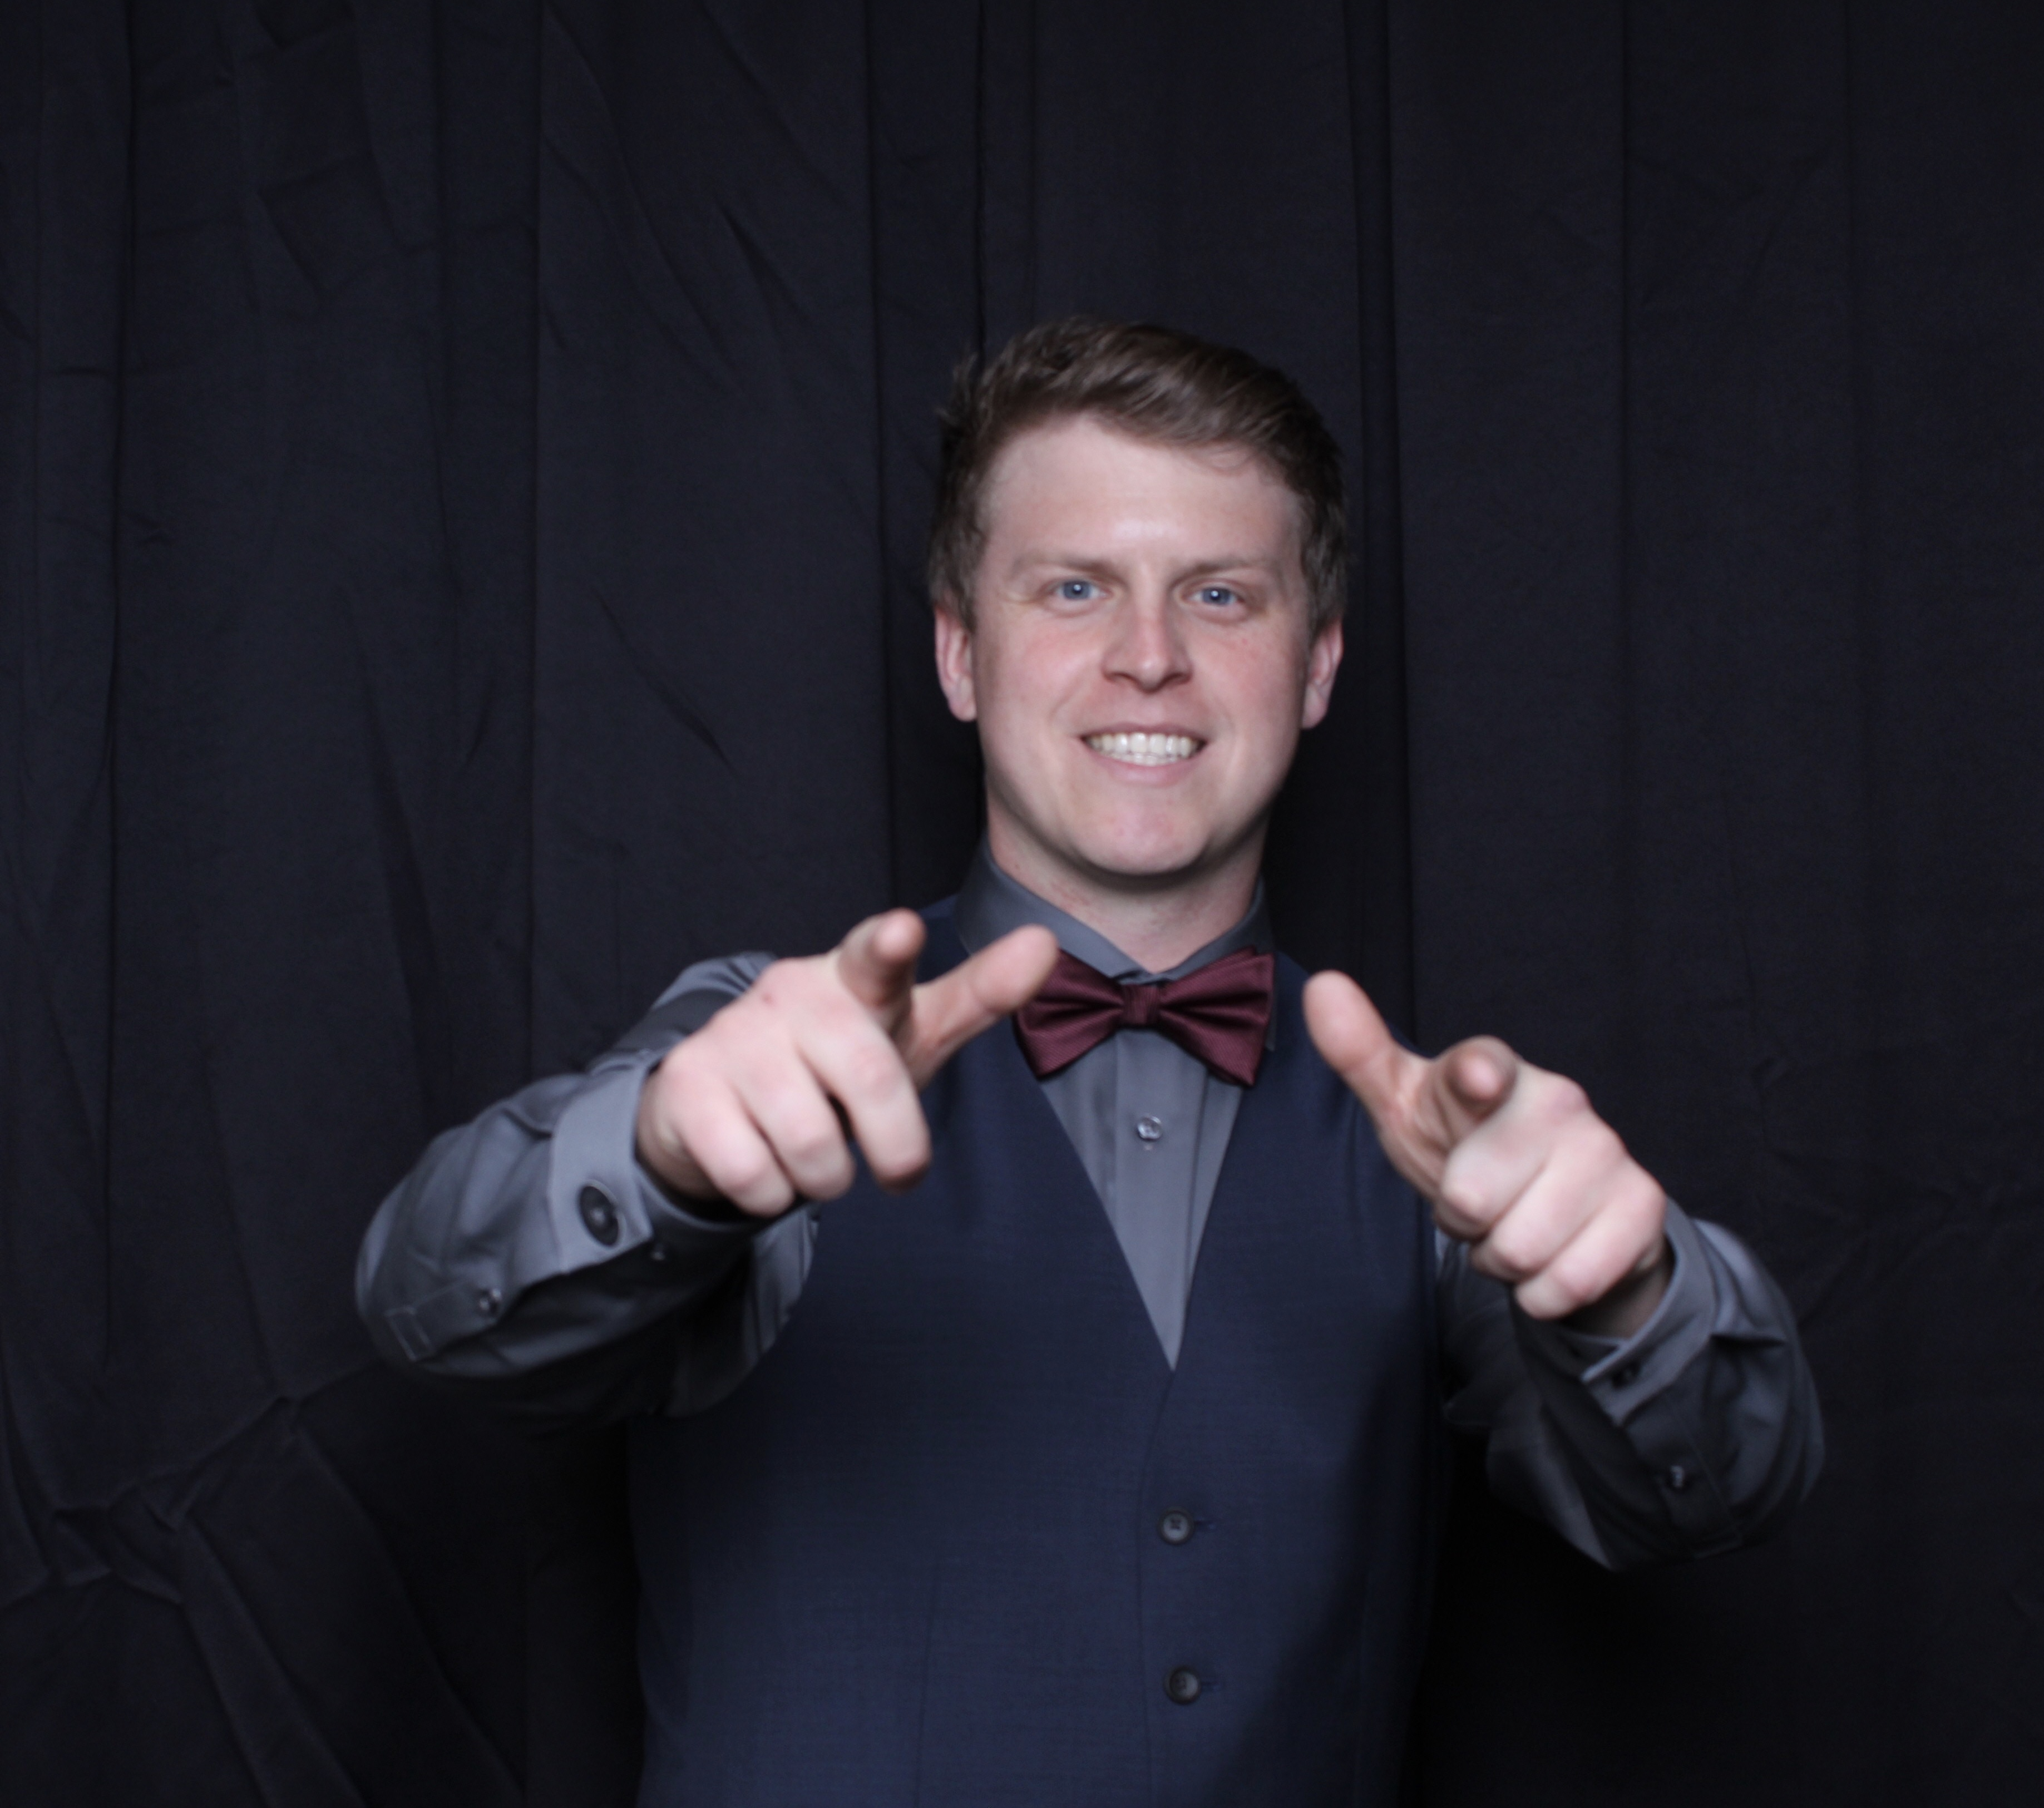 Kyle Kelly Owner Bucks Photo Booths